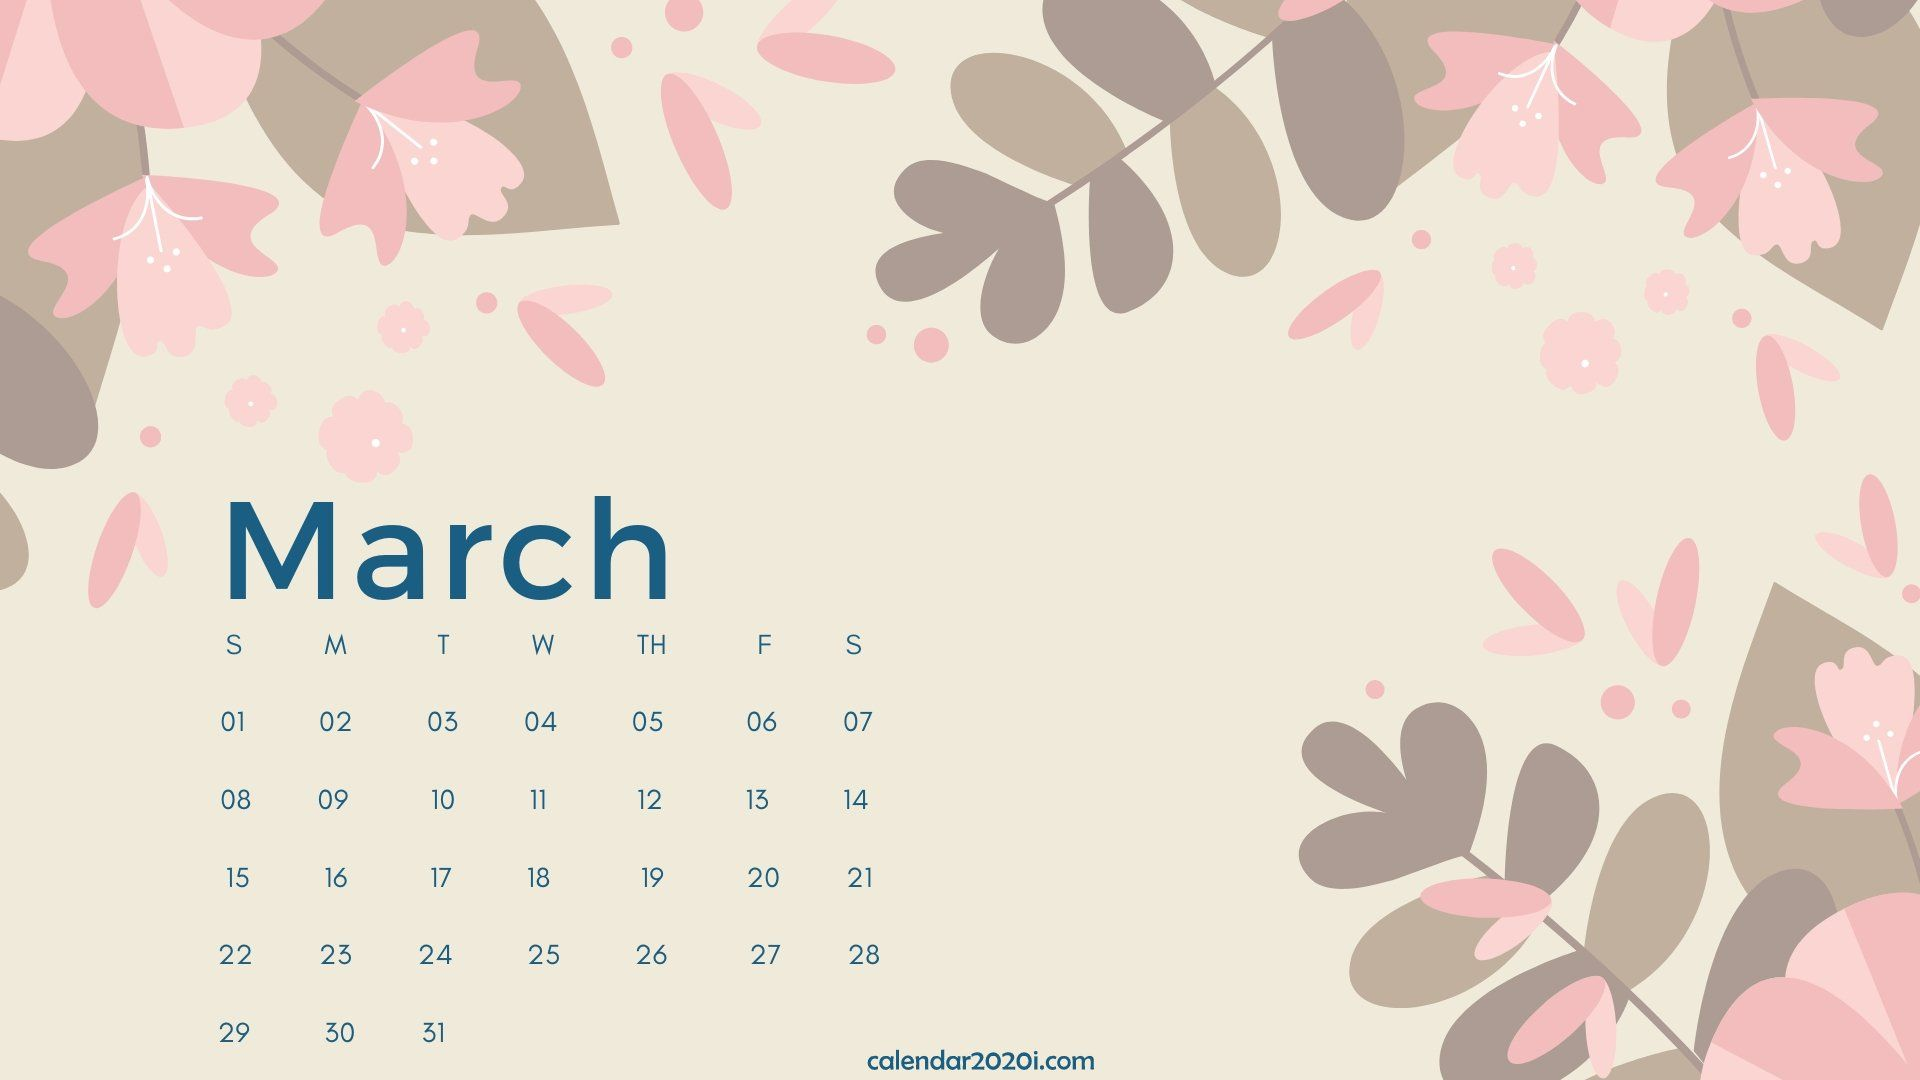 2020 Calendar Monthly Hd Wallpapers Calendar Wallpaper Desktop